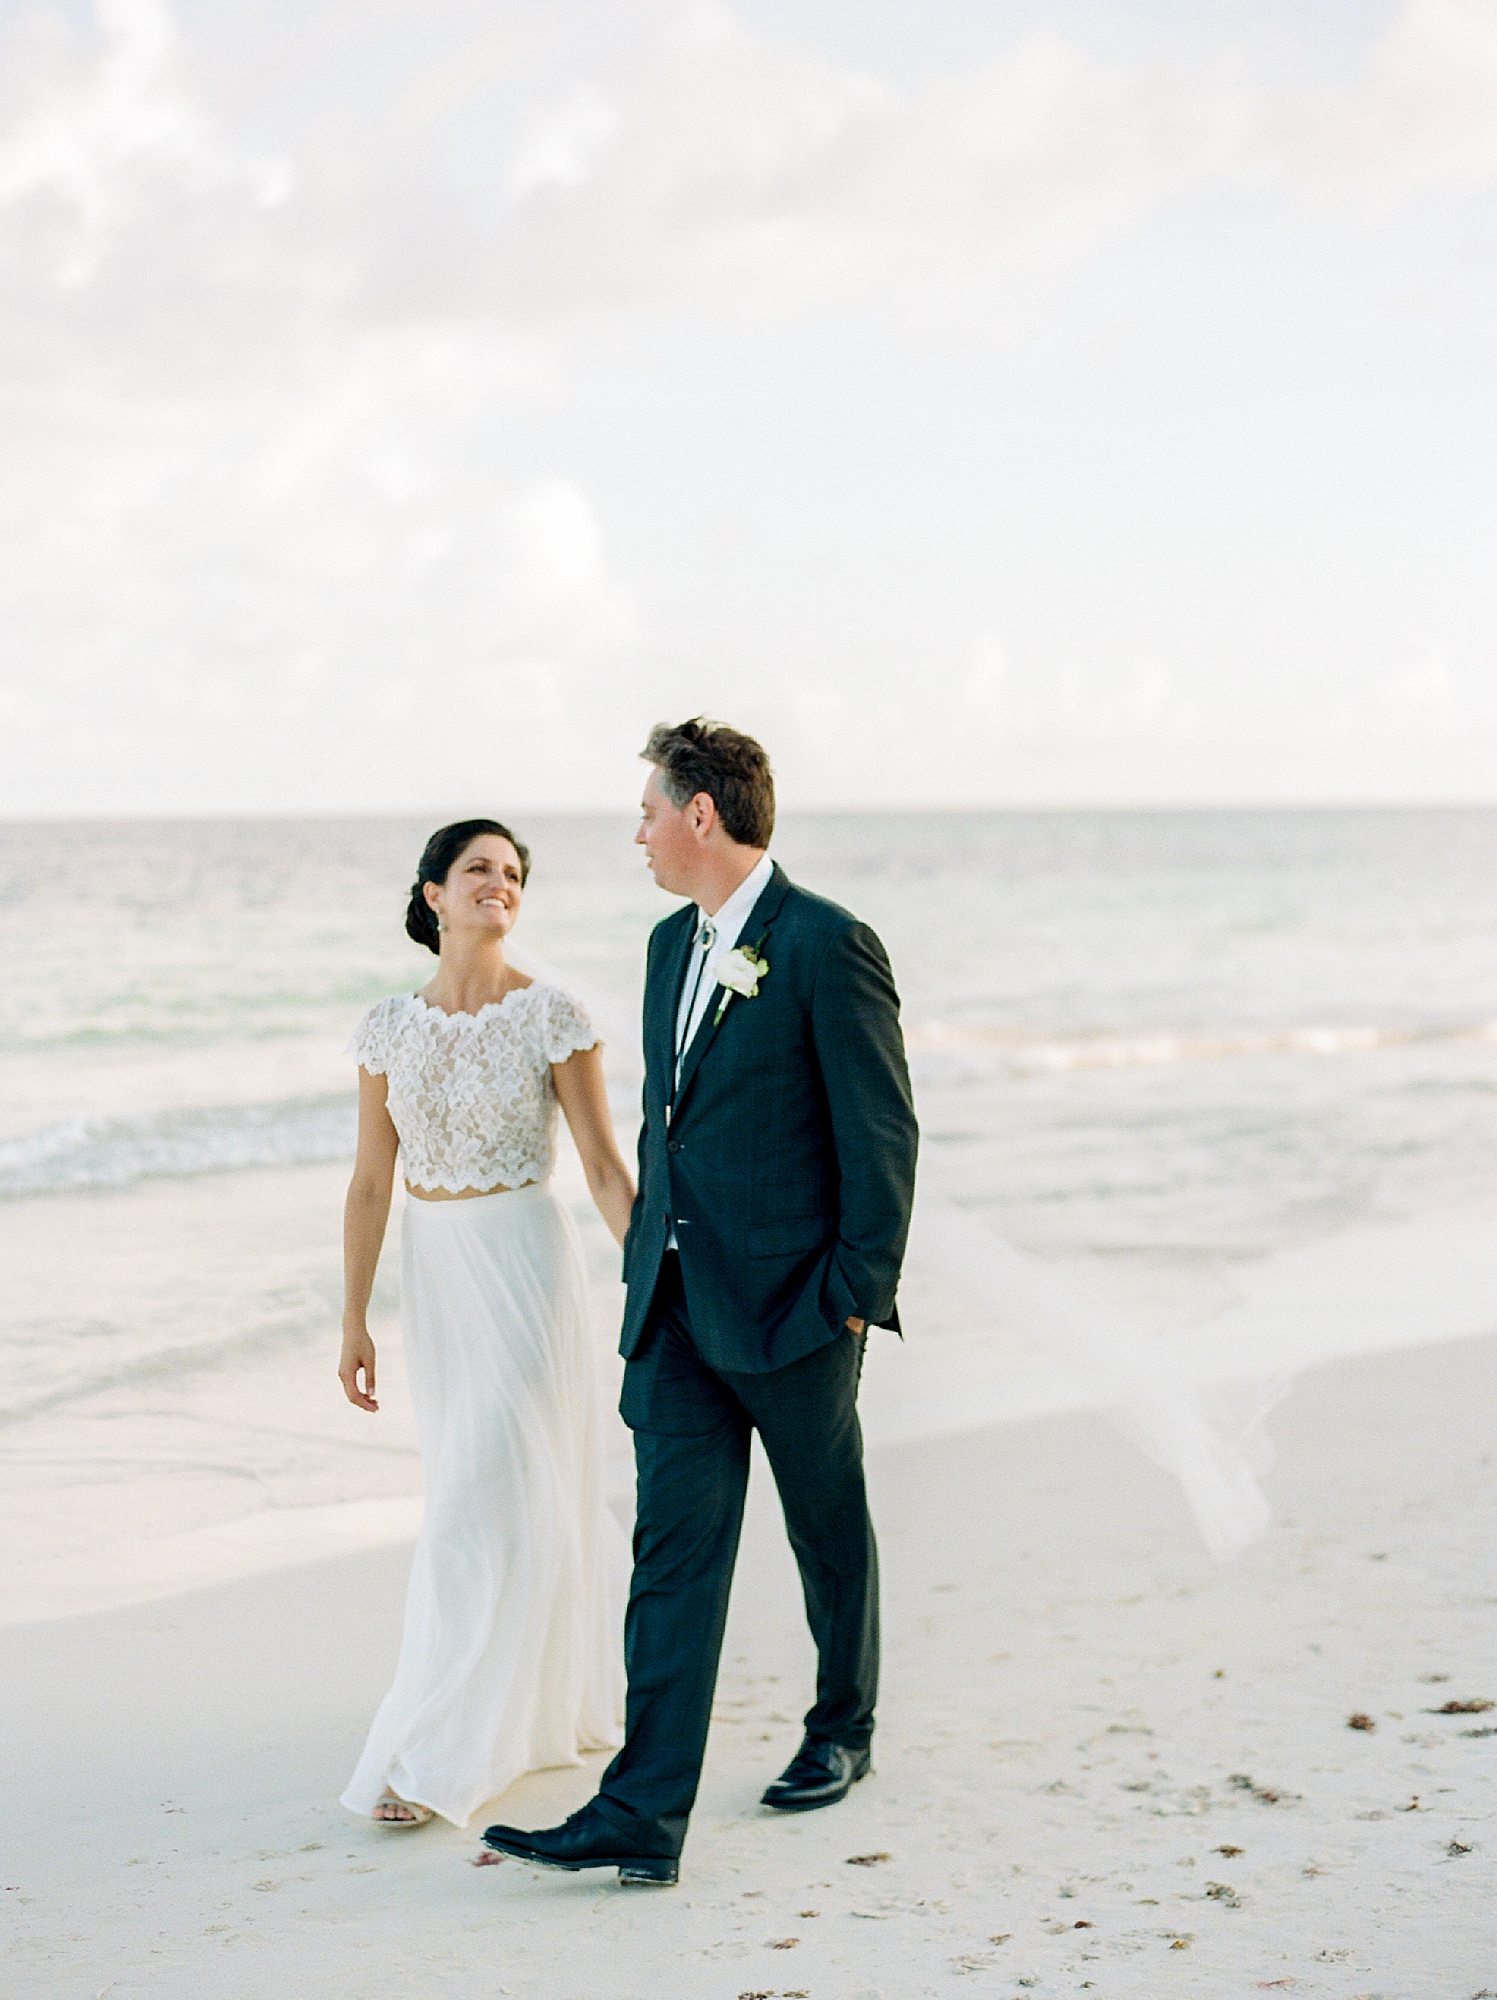 Stylish and Candid Destination Film Wedding Photography in Tulum Mexico by Magdalena Studios 0024